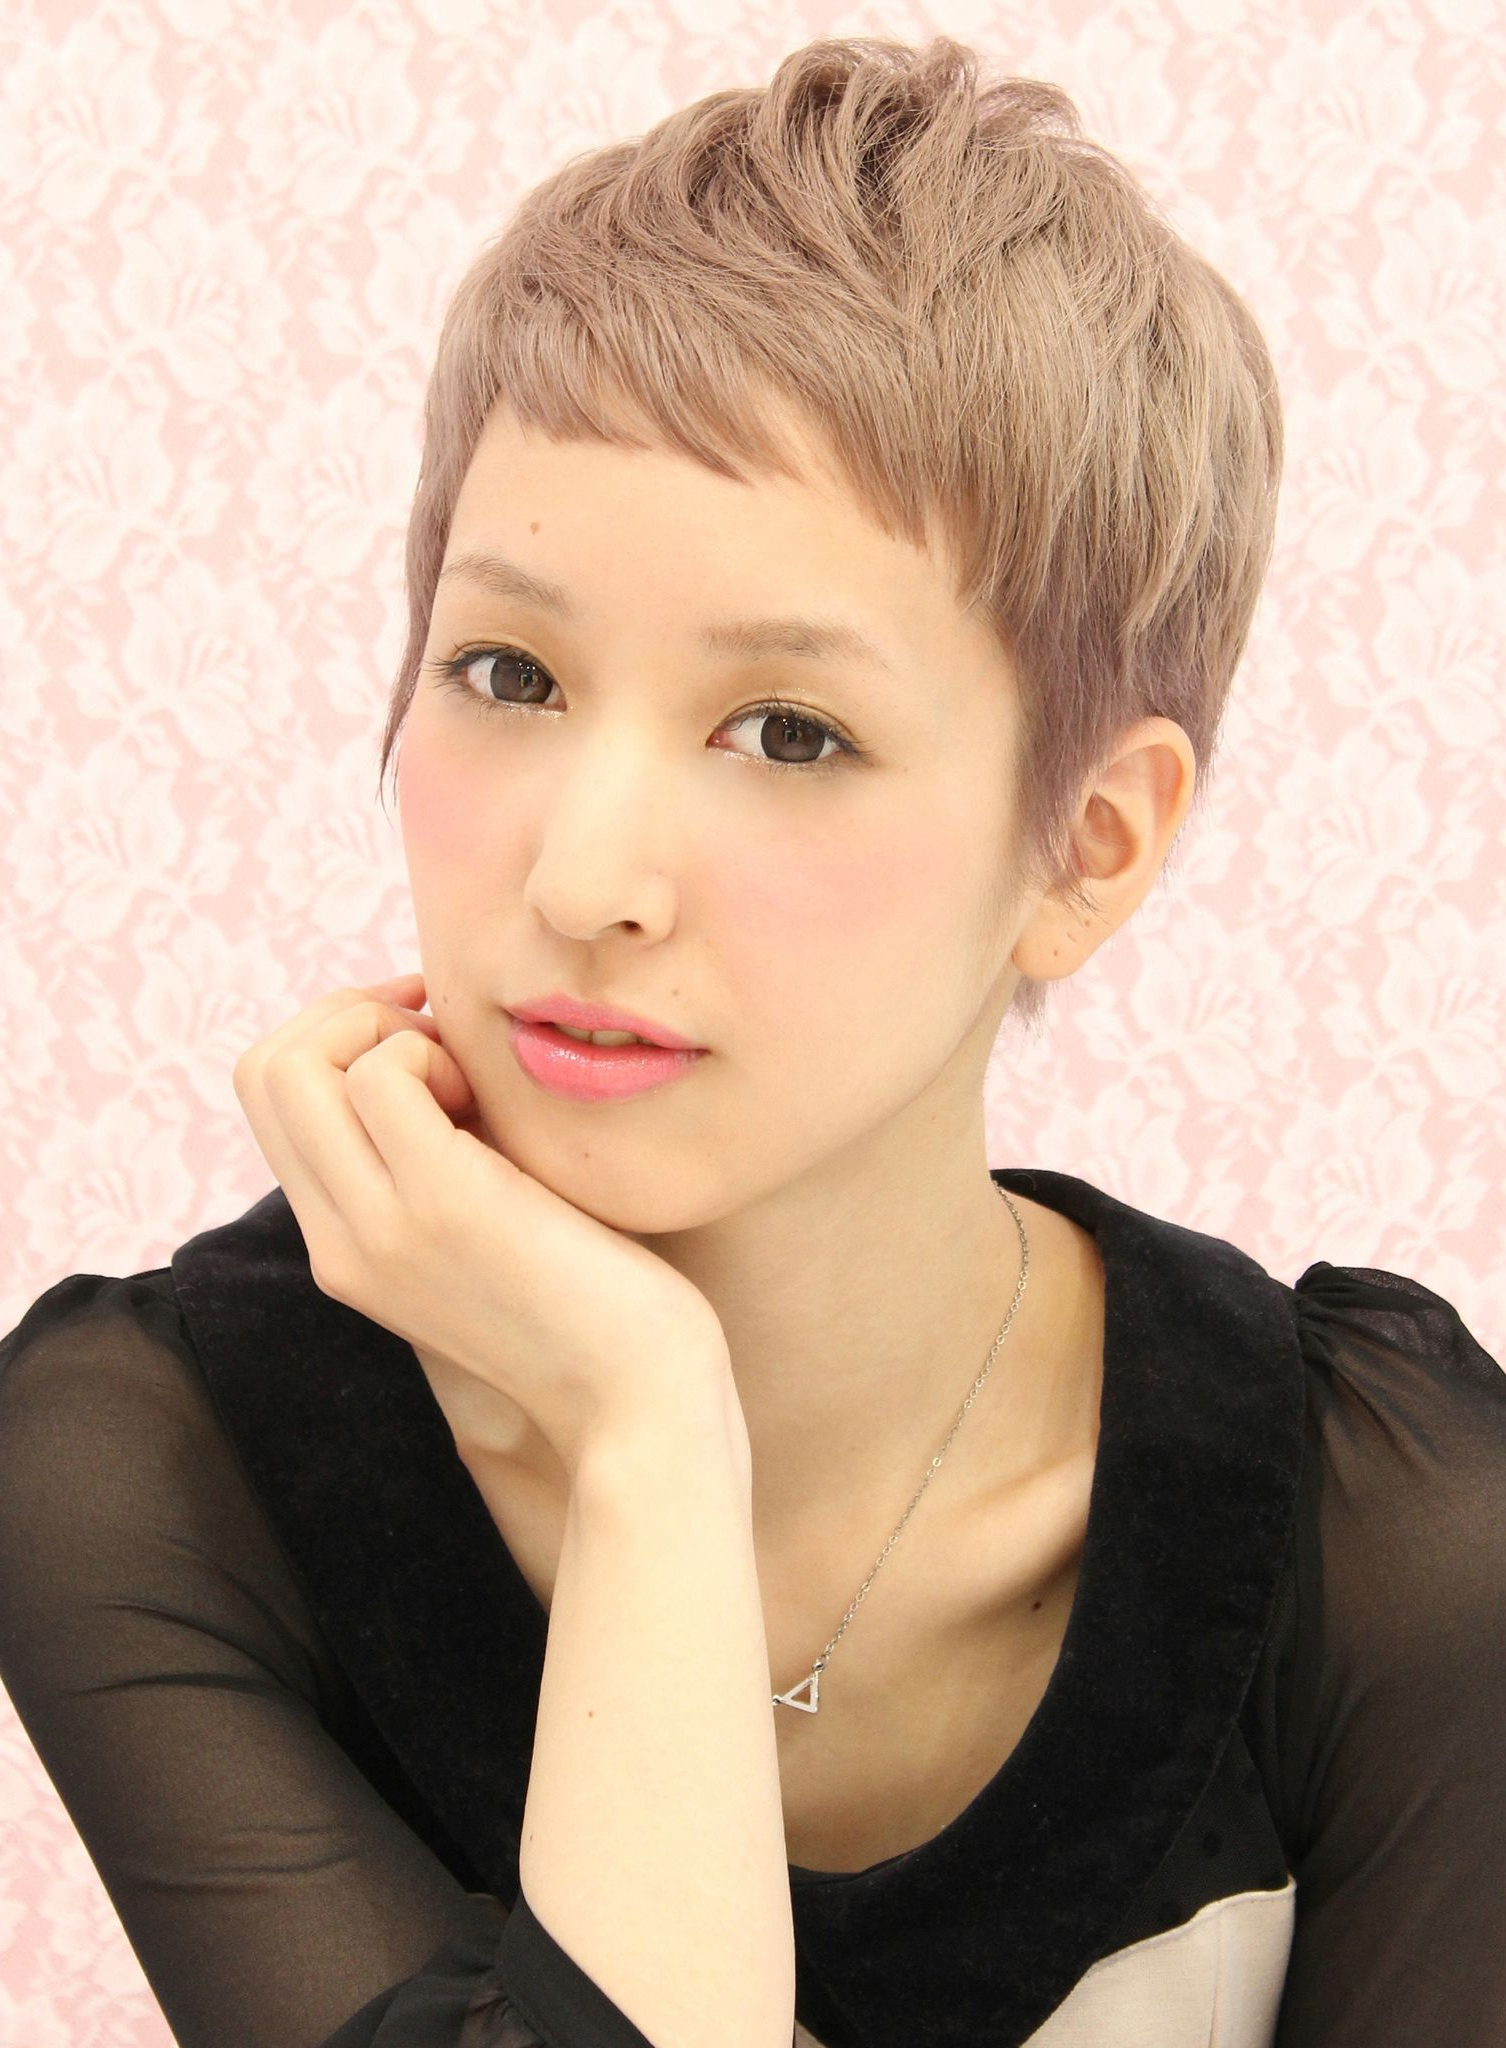 21 Gorgeous Super Short Hairstyles For Women   Styles Weekly In Super Short Haircuts For Girls (View 13 of 25)